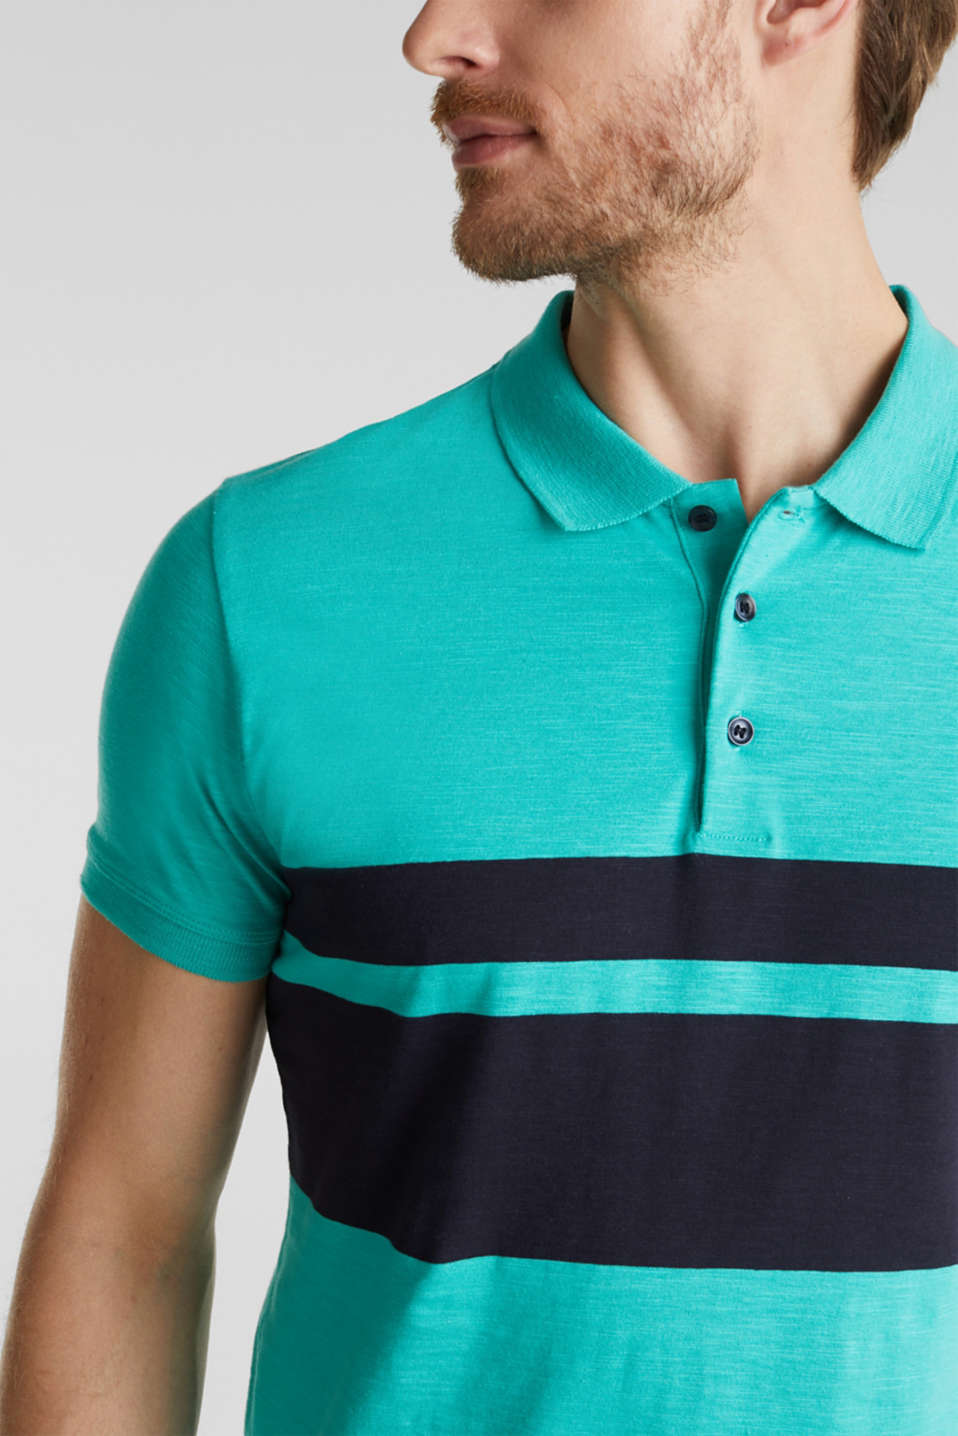 Jersey polo shirt, organic cotton, LIGHT TURQUOISE 3, detail image number 1